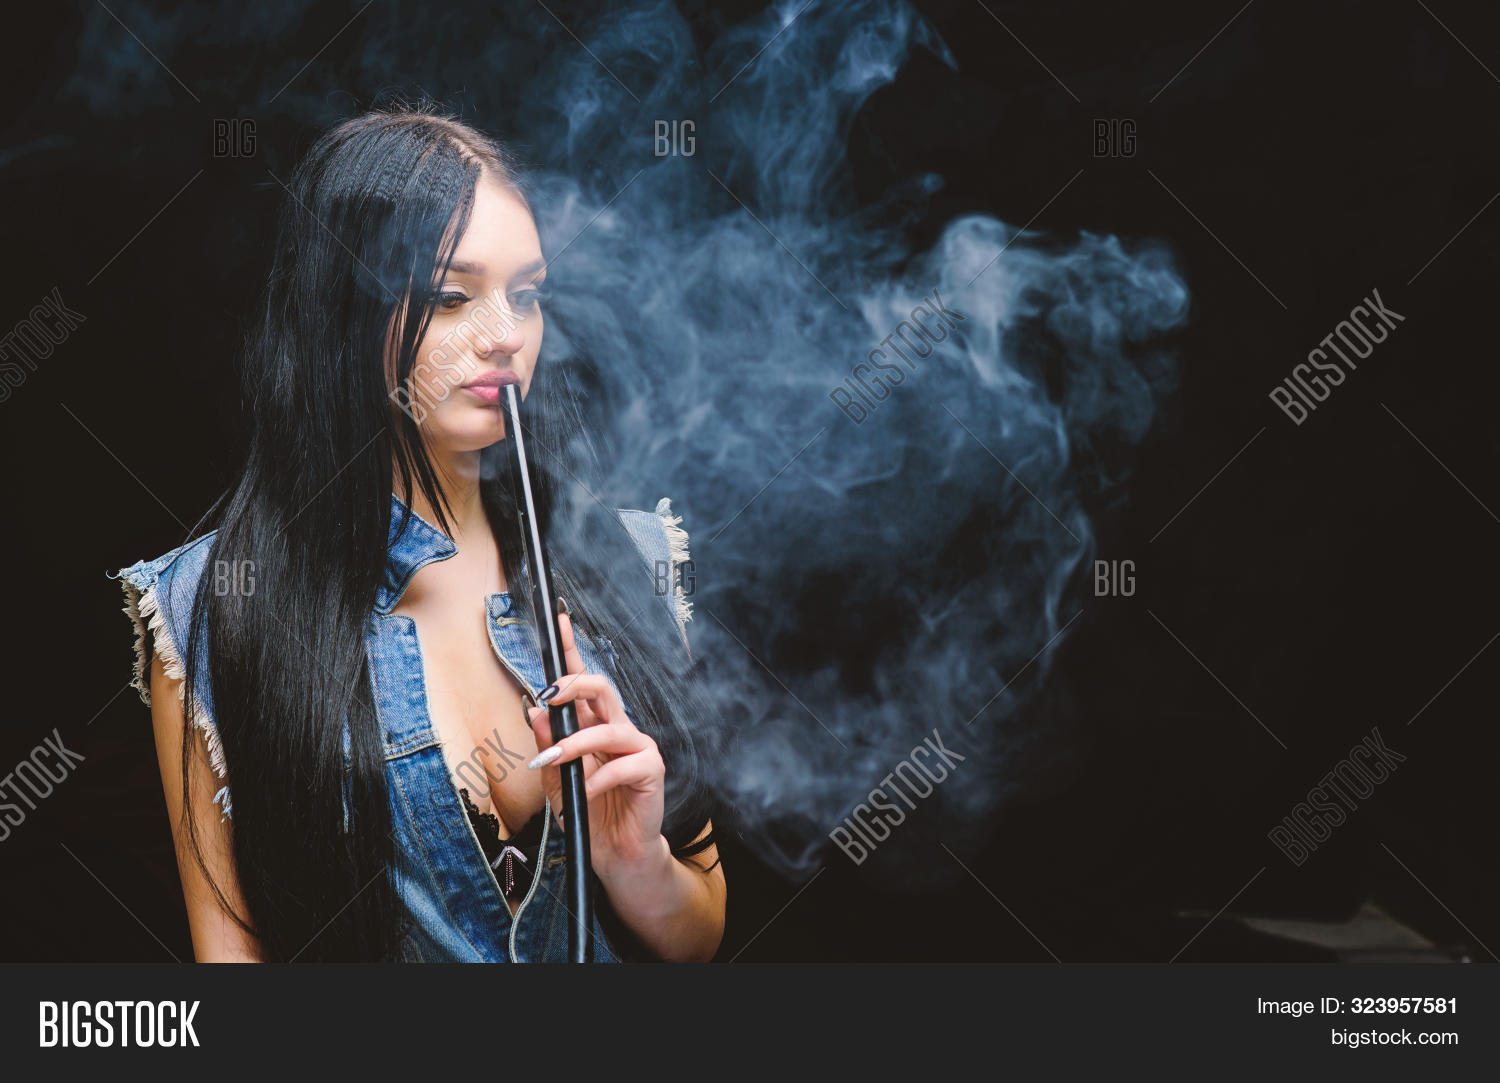 addict,addiction,adult,alternative,background,bad,bar,beautiful,black,brutal,business,cigar,cigarette,cute,denim,desire,drug,e-cig,ecig,electronic,erotic,exhale,expression,fashion,gadget,girl,habit,health,healthy,hookah,isolated,sexi,sexy,smoke,smoker,smoking,style,tabacco,technology,tobacco,trend,unhealthy,vape,vapor,white,woman